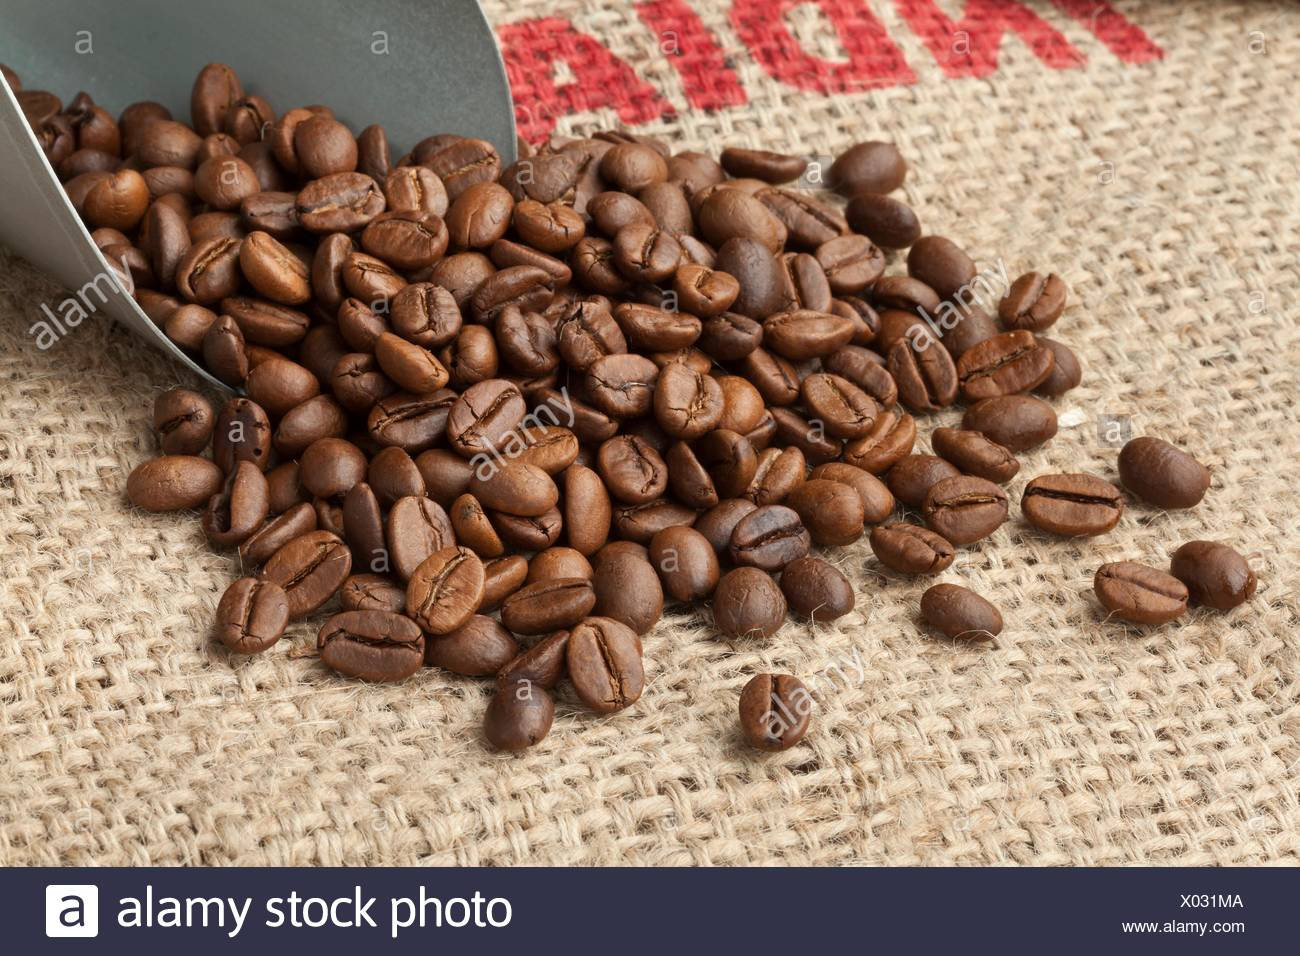 Roasted Malabar coffee beans from India on a jute bag. - Stock Image